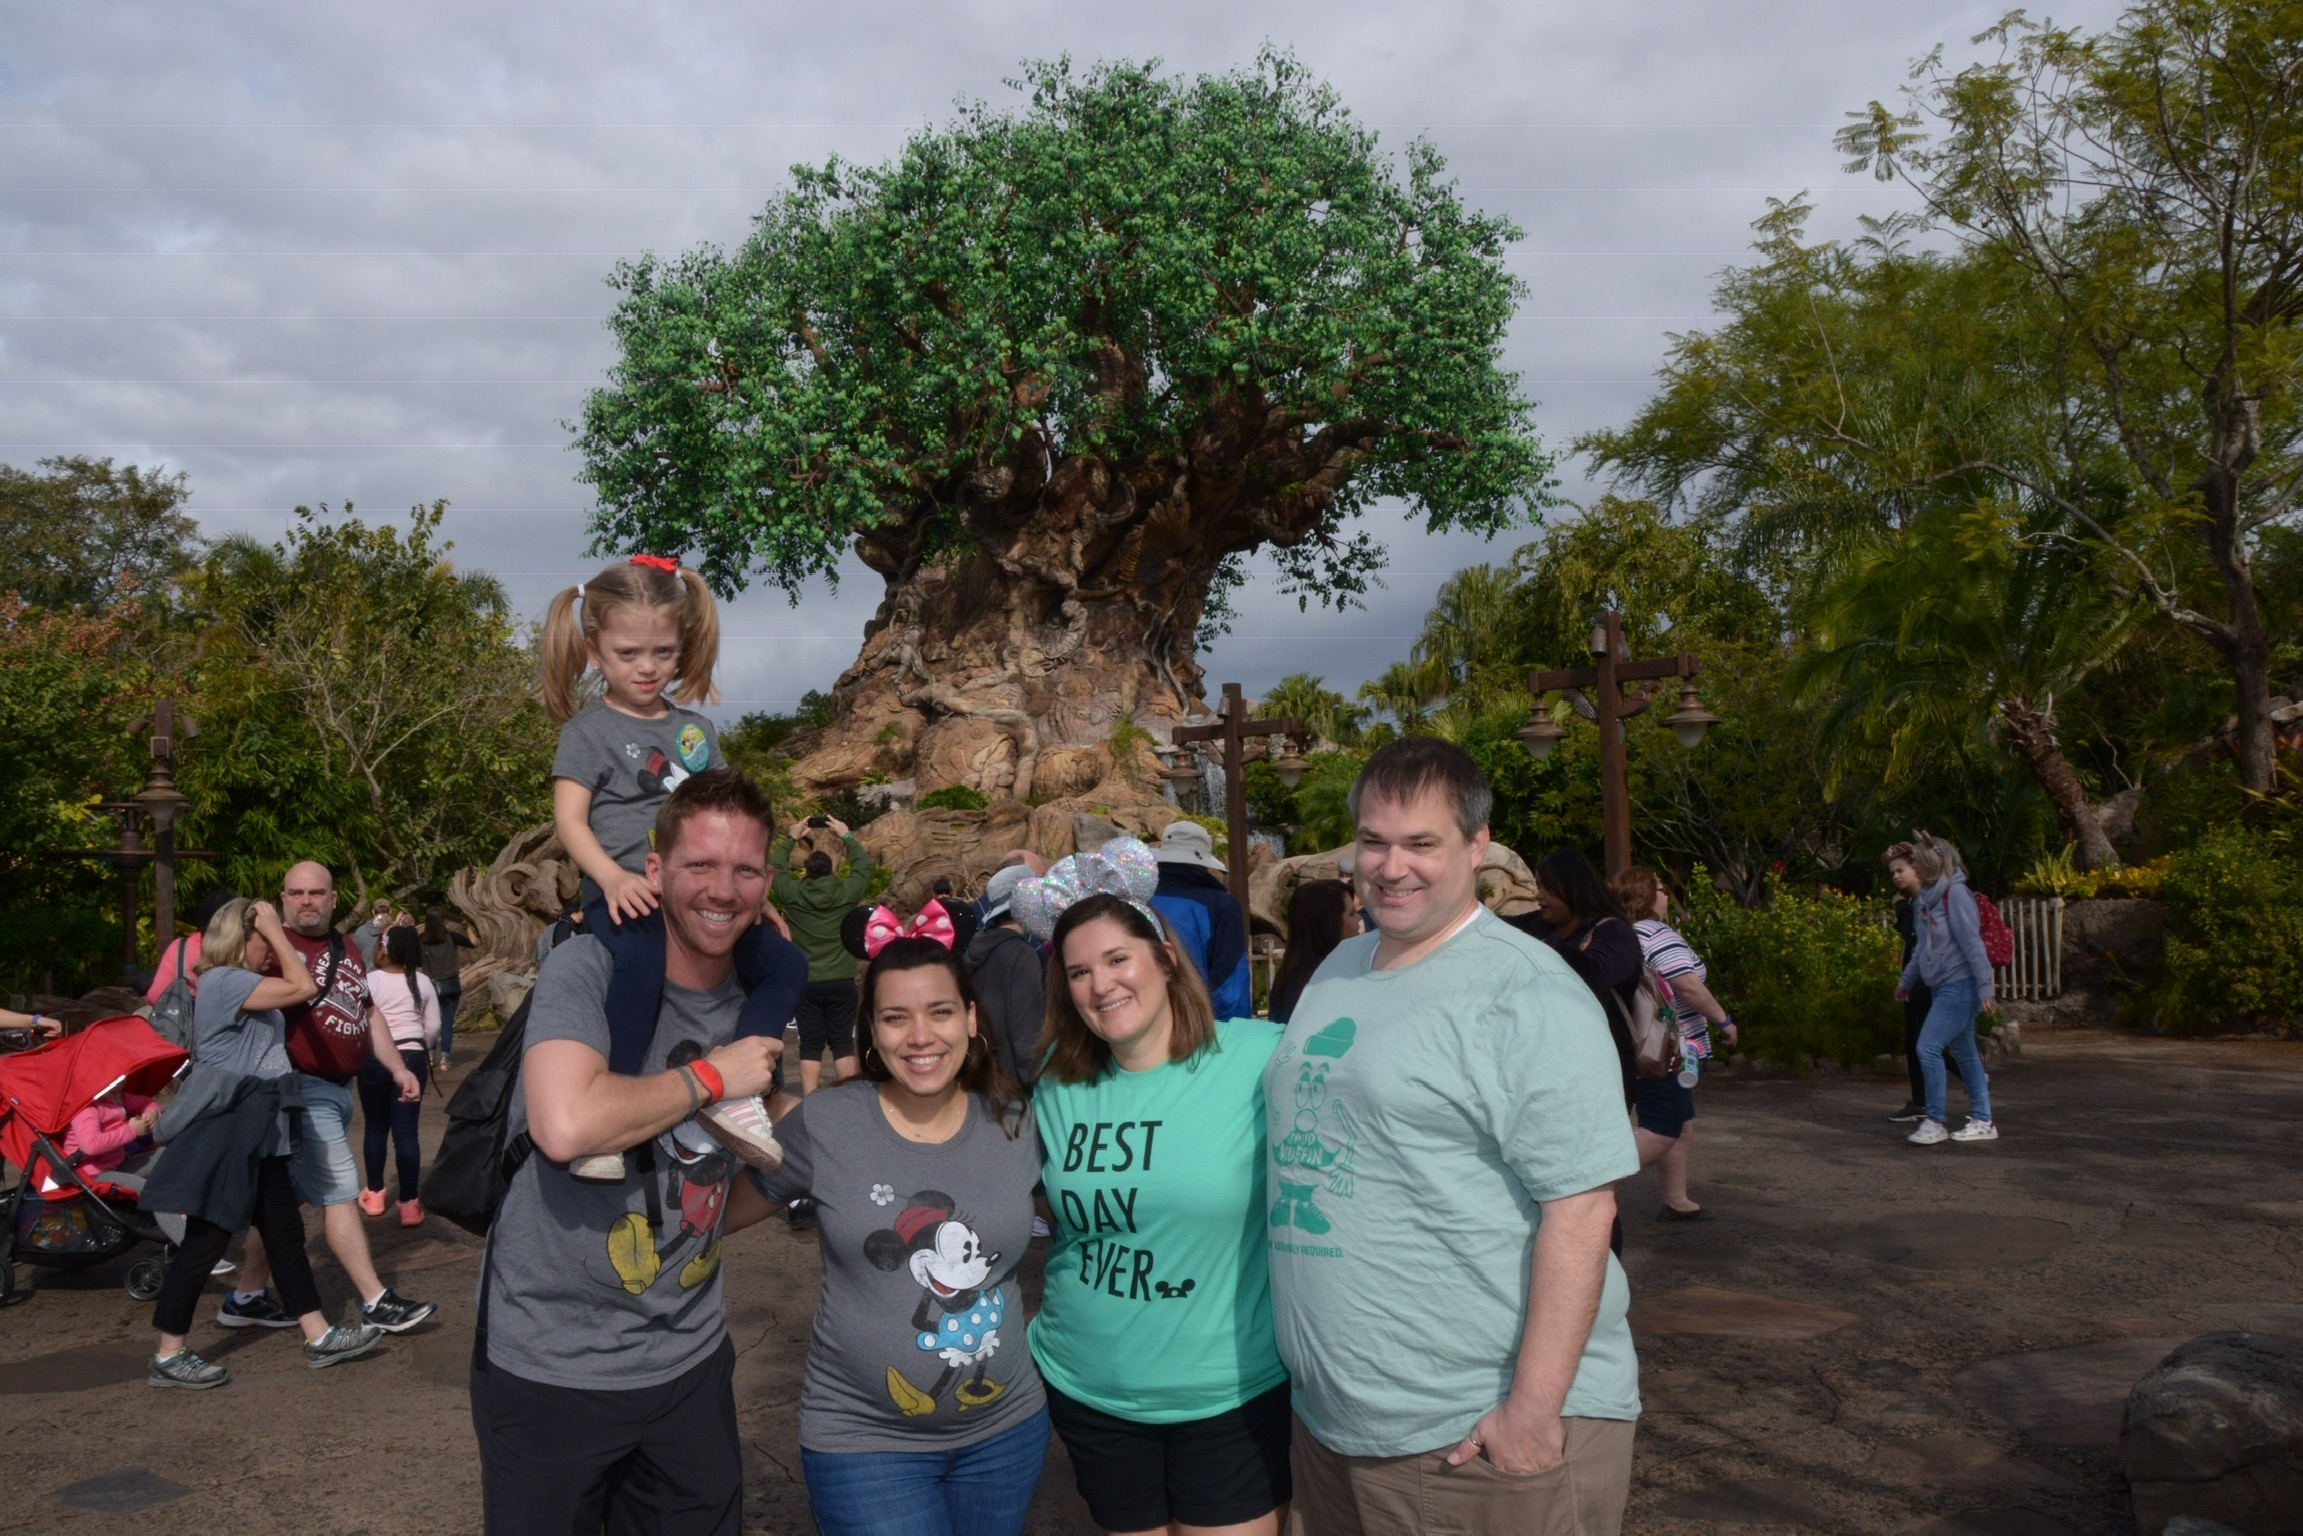 Festivities continued the next day at Animal Kingdom!